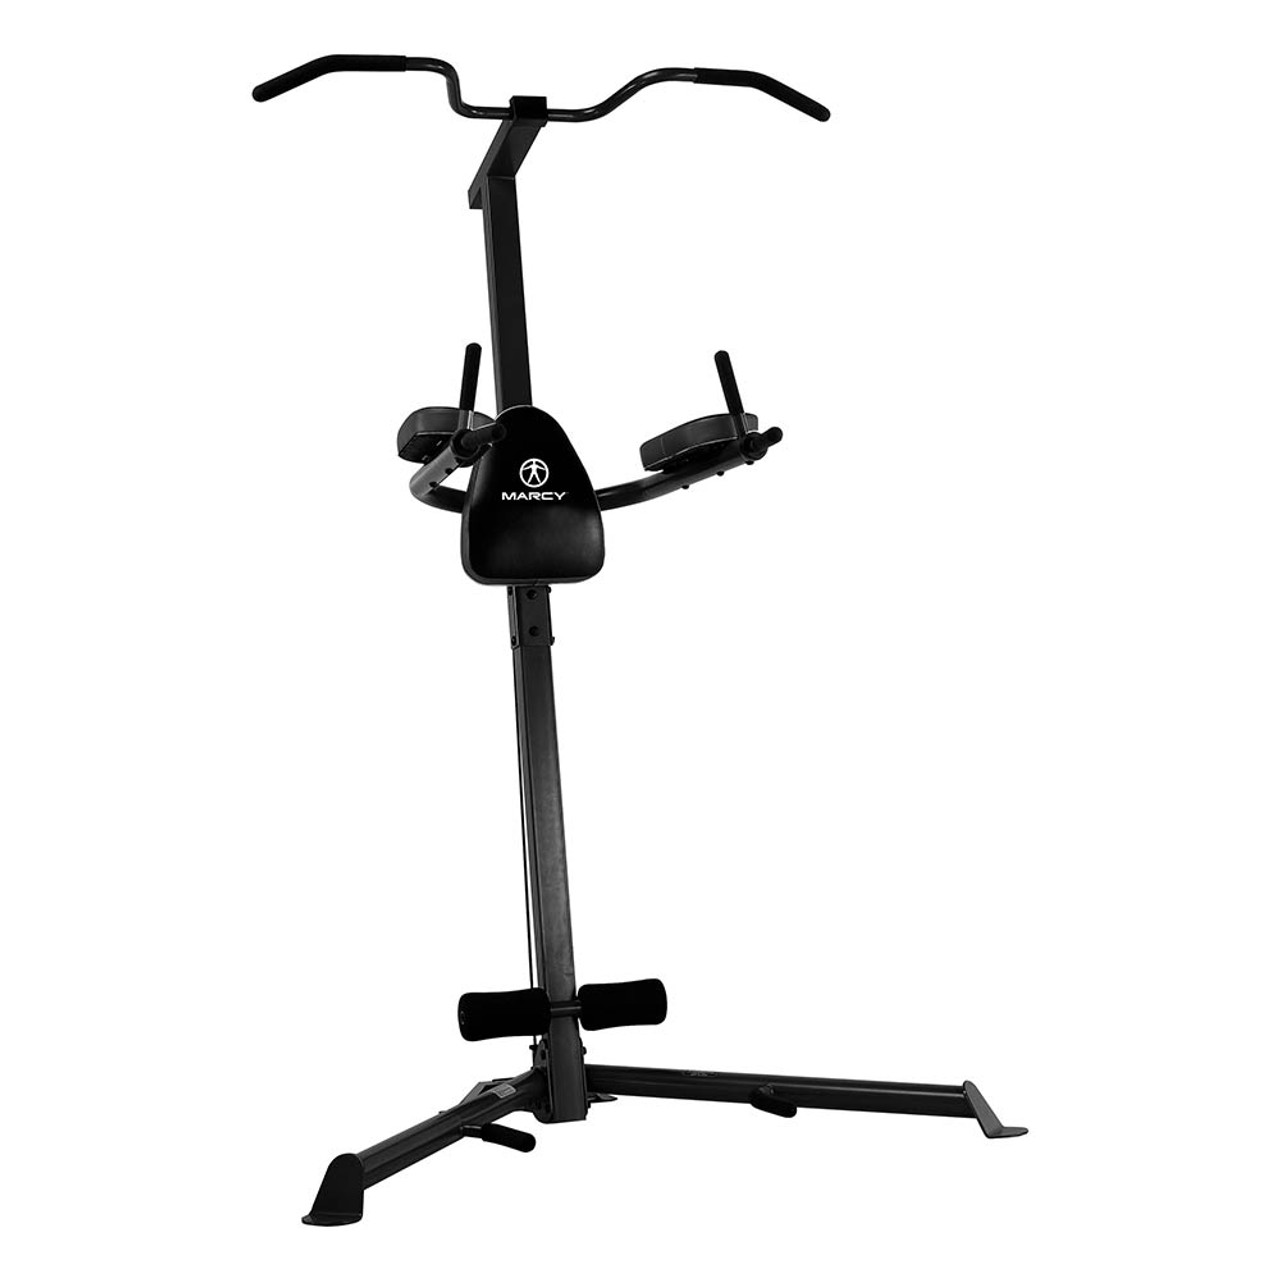 power tower marcy tc 3508 quality heavy duty power towerthe power tower marcy tc 3508 brings high intensity interval training to the best home